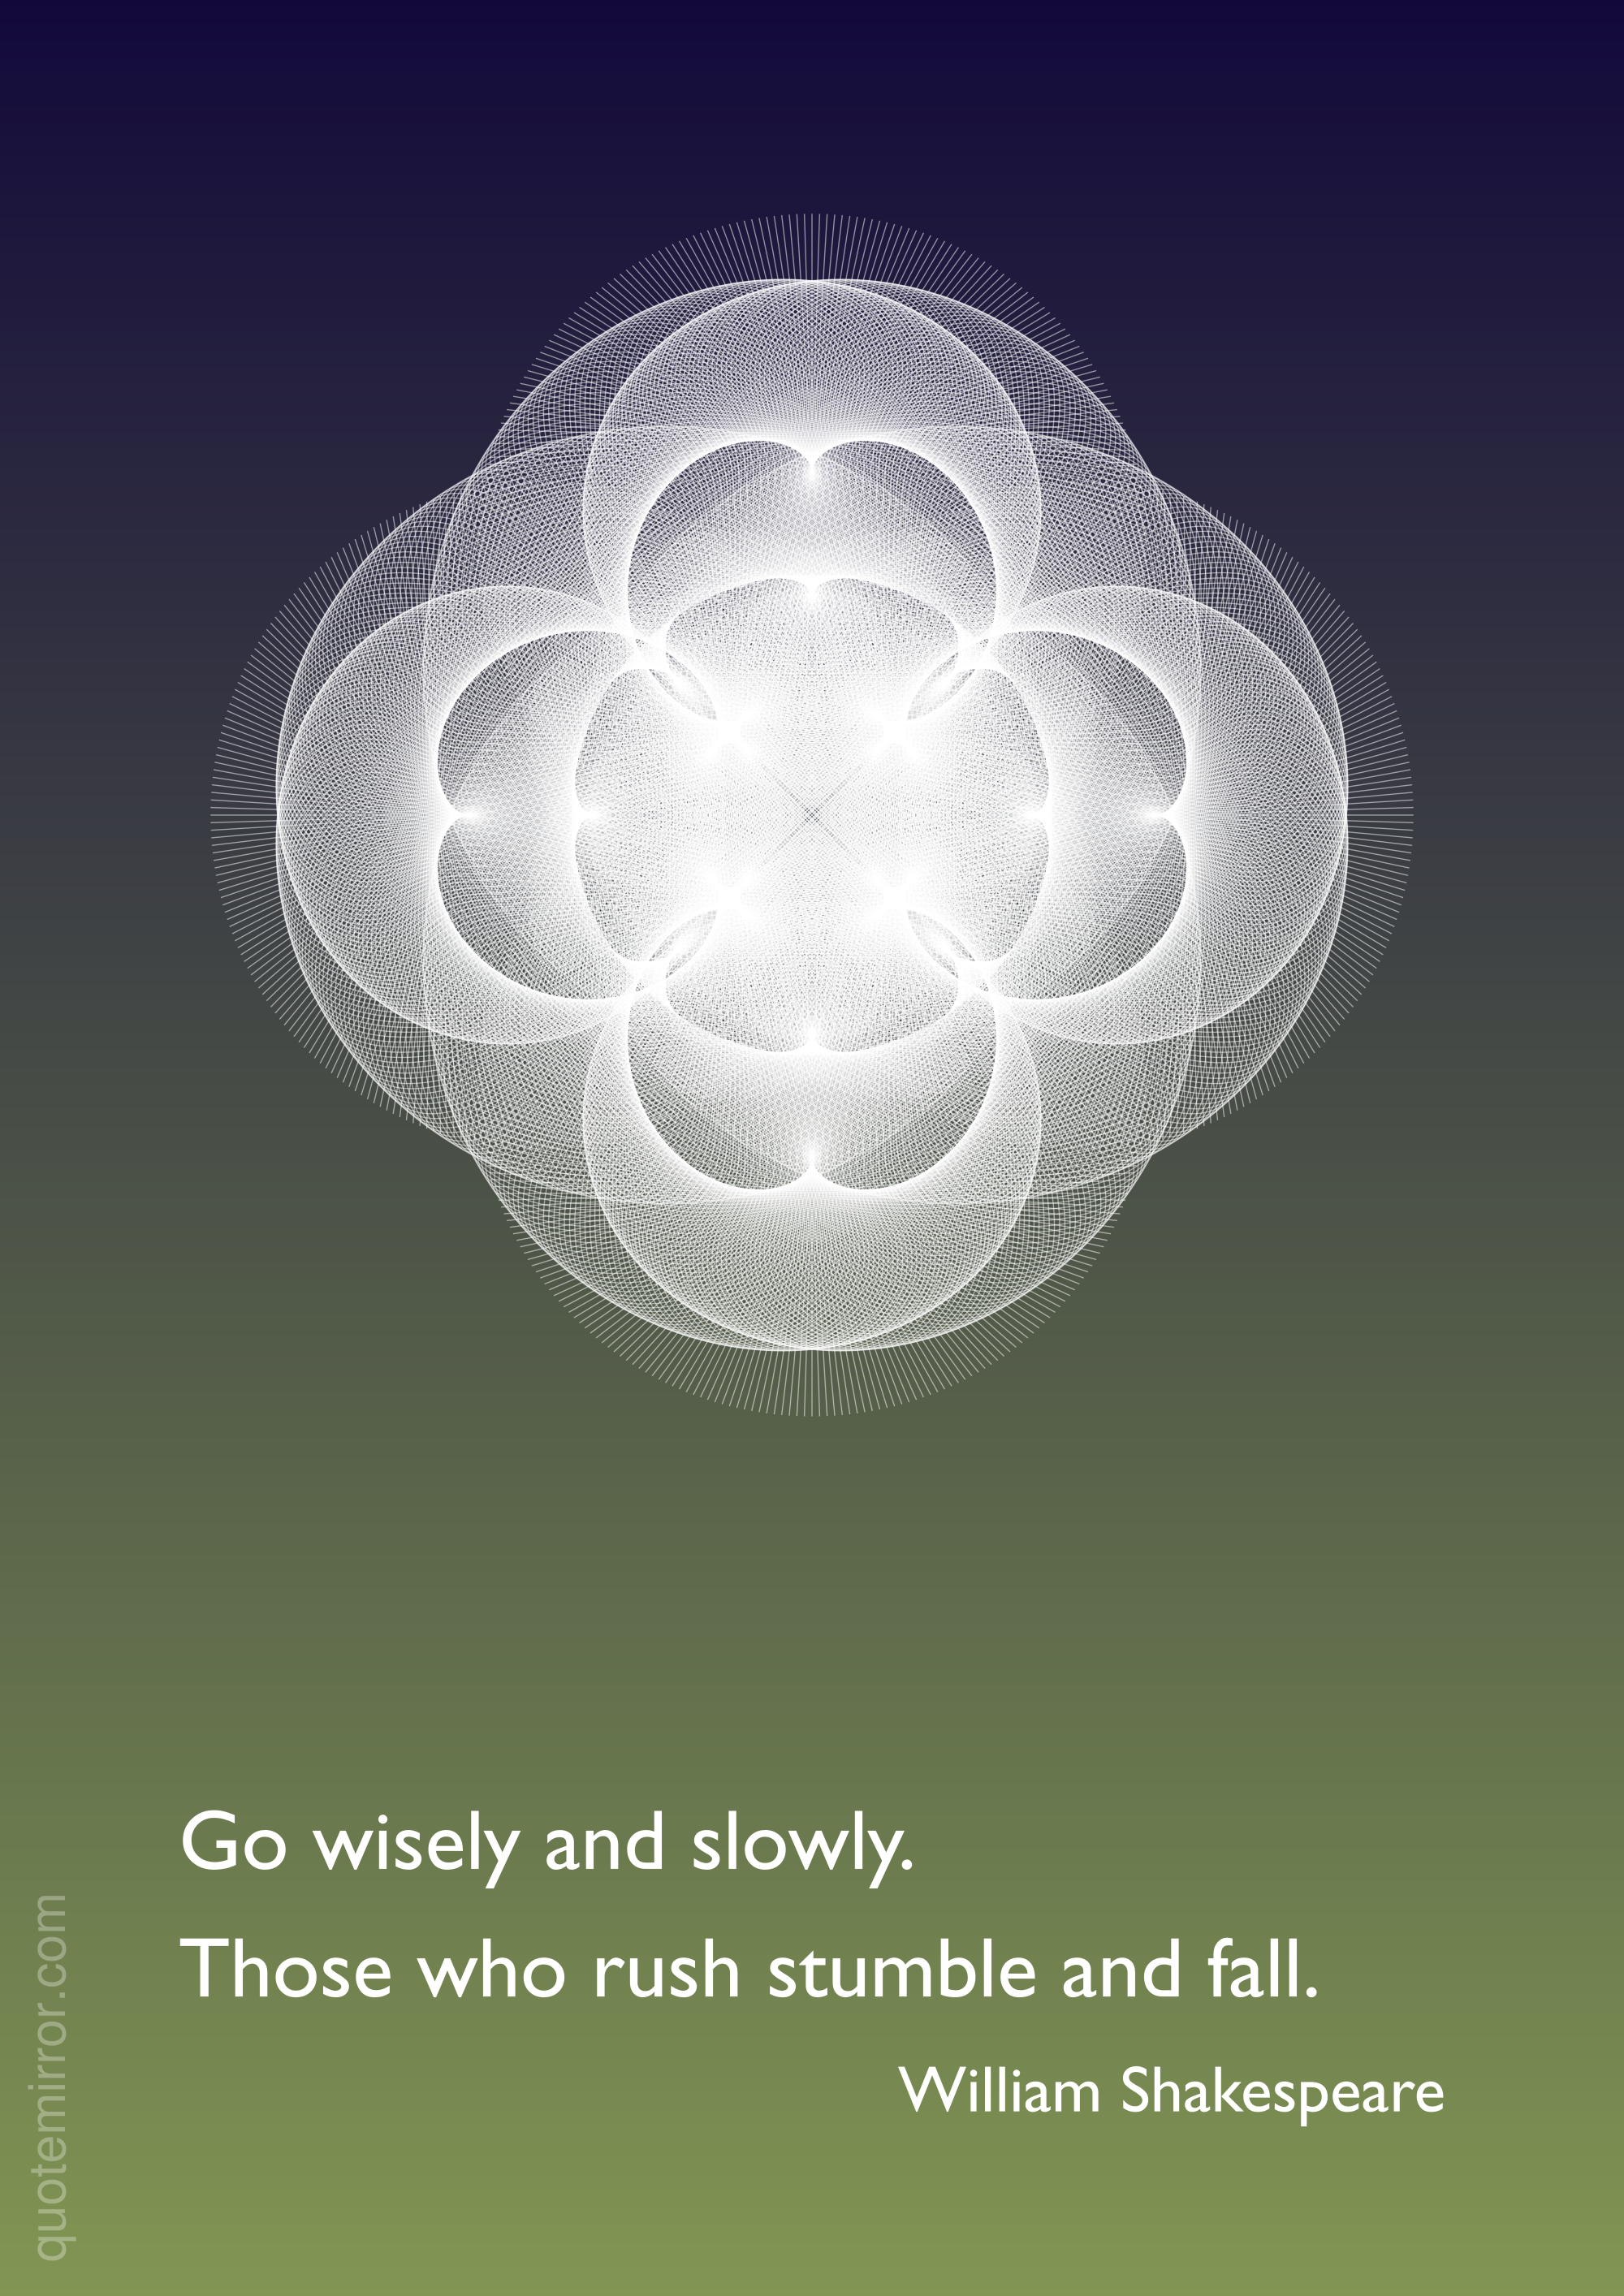 Go wisely and slowly.  Those who rush stumble and fall. –William Shakespeare http://quotemirror.com/s/z32p0 #slowly #wisely